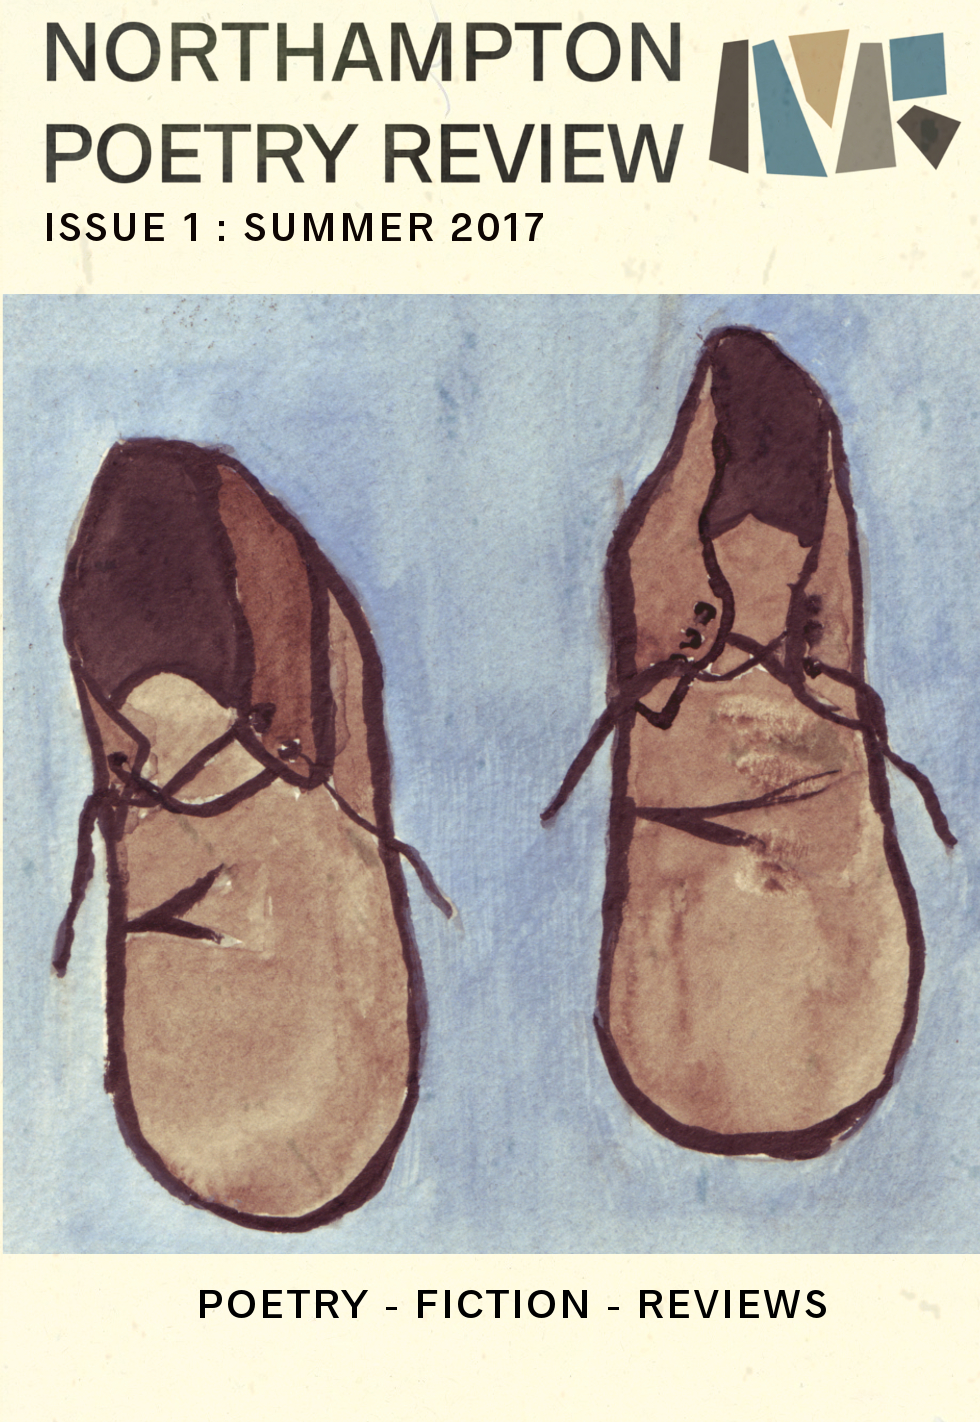 Download Northampton Poetry Review issue 1: Summer 2017  Or read via issuu below